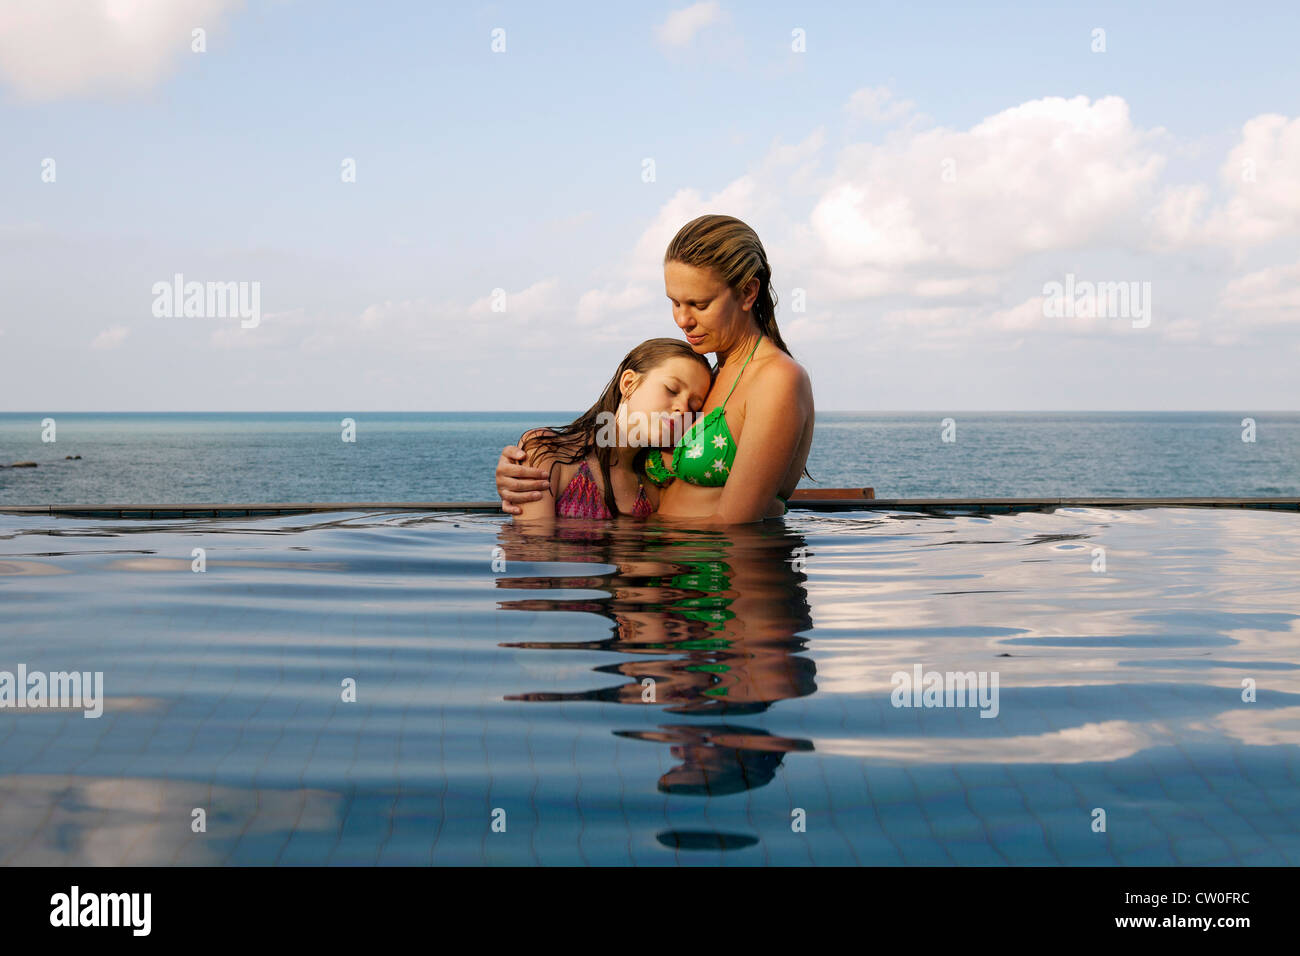 Mother and daughter in infinity pool - Stock Image